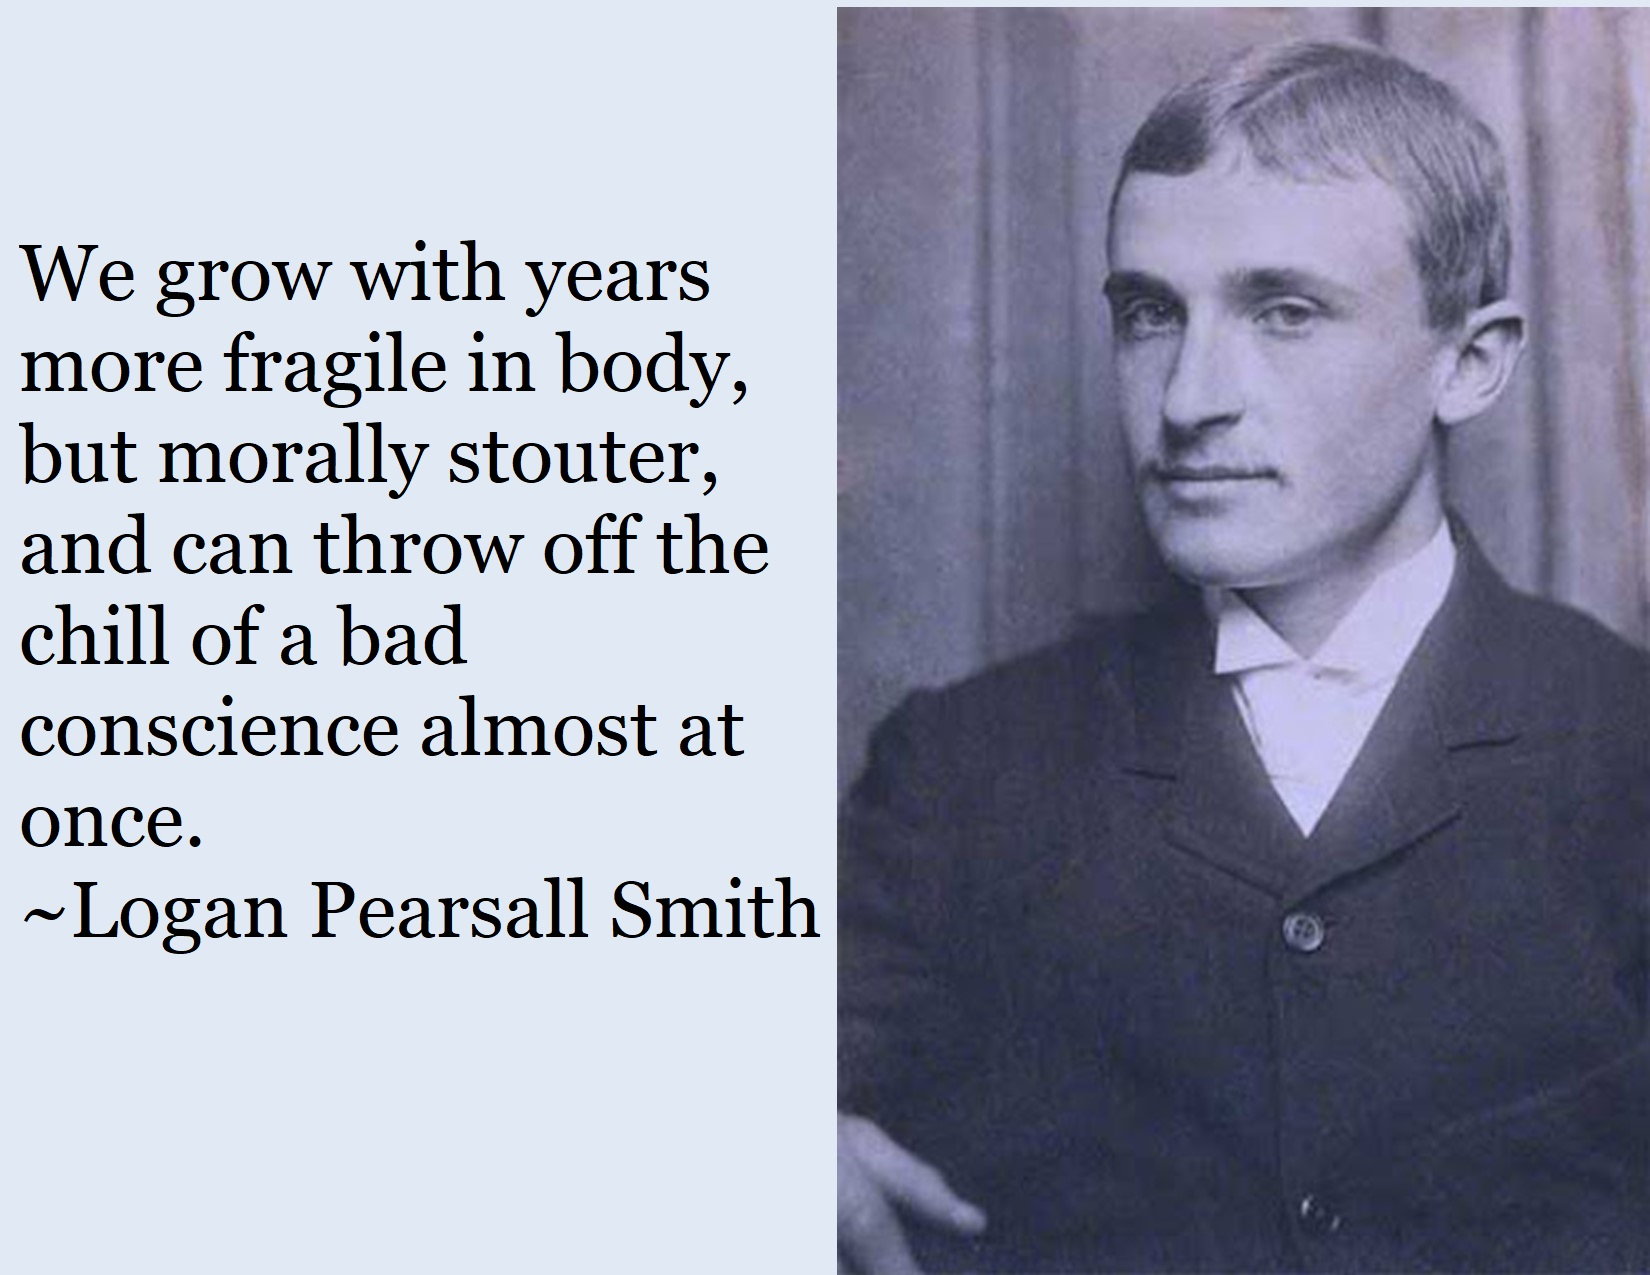 """We grow with years more fragile in body, but morally stouter.."" ~Logan Pearsall Smith [1650×1275]"